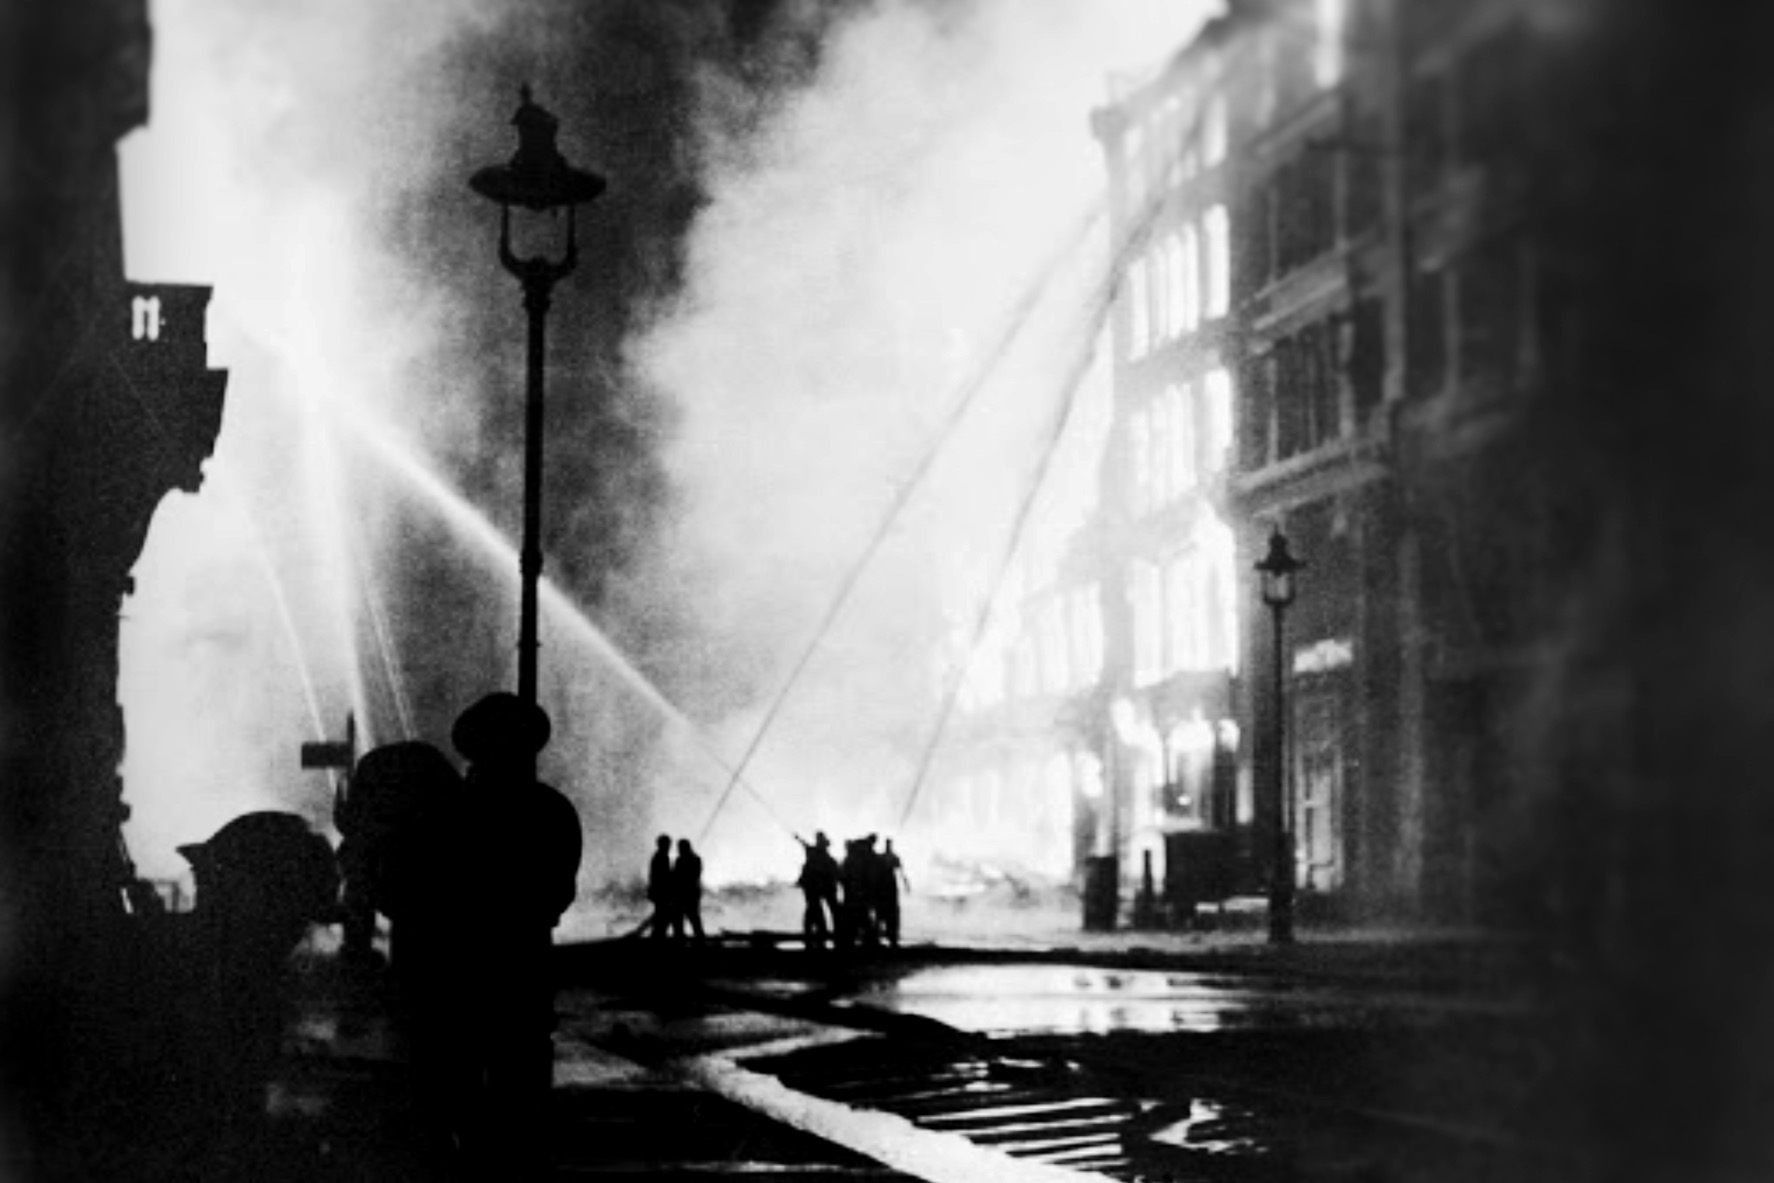 Firefighting during the London Blitz